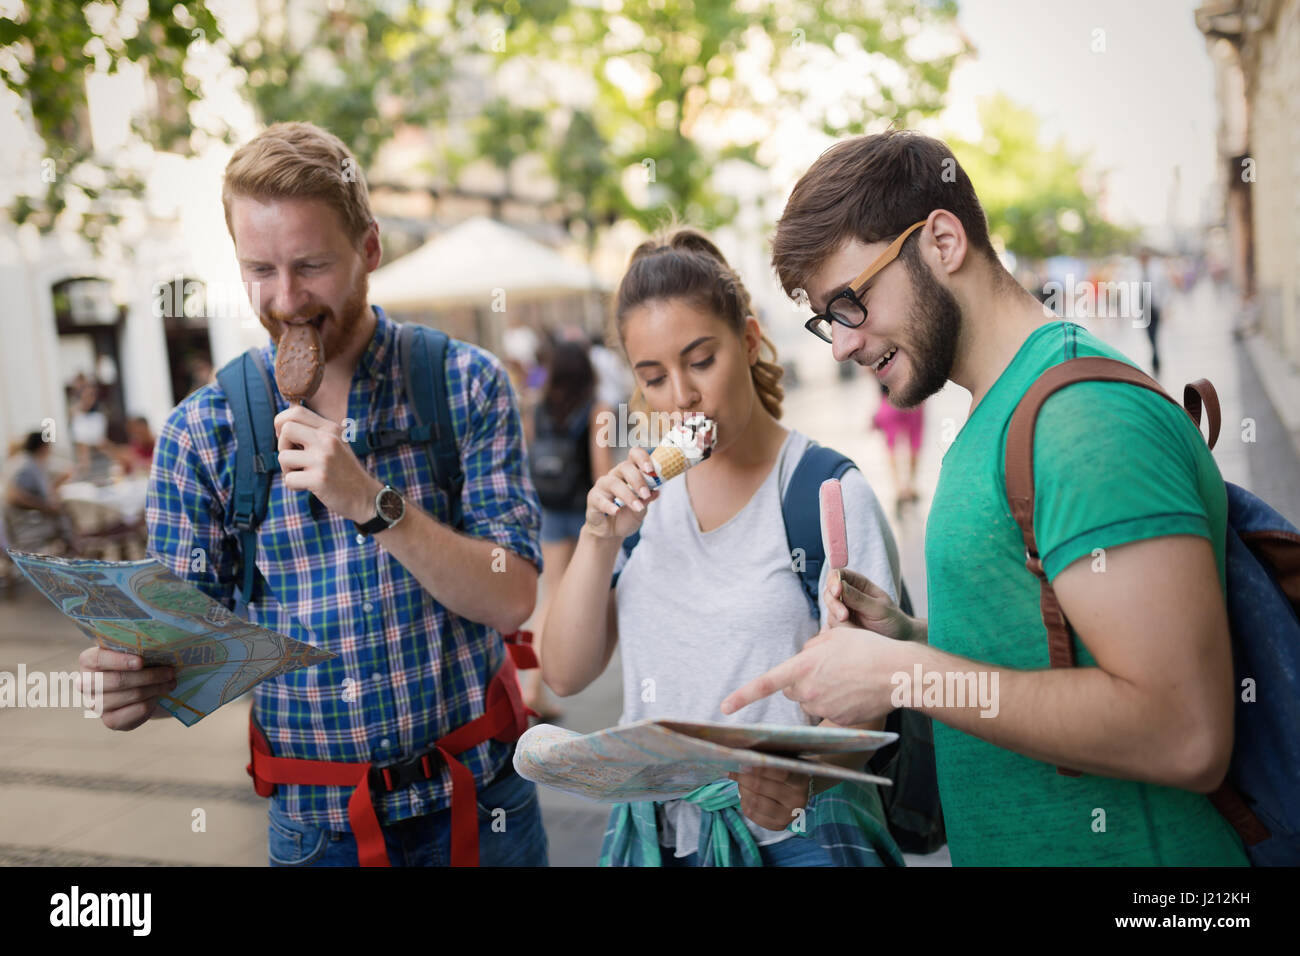 Travelling young people sightseeing and eating ice creams - Stock Image